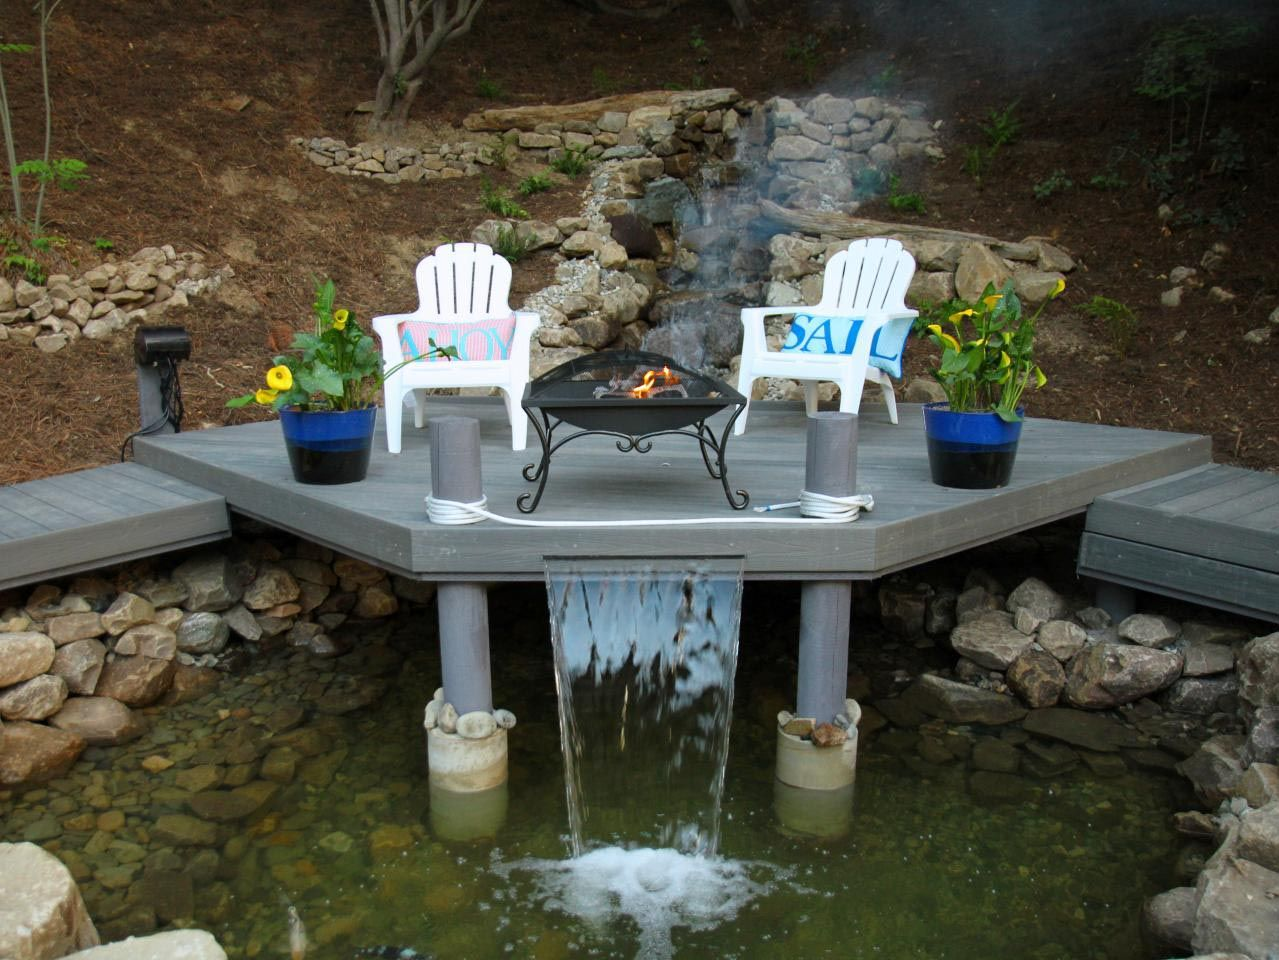 Delightful Fire And Water Yard Decoration | Water Fountain Plans. Gas Outdoor Fire Pit  Ideas. FeuerstellenDiy FeuerstelleGasfeuerstelle Im FreienVersunkene ... Design Ideas